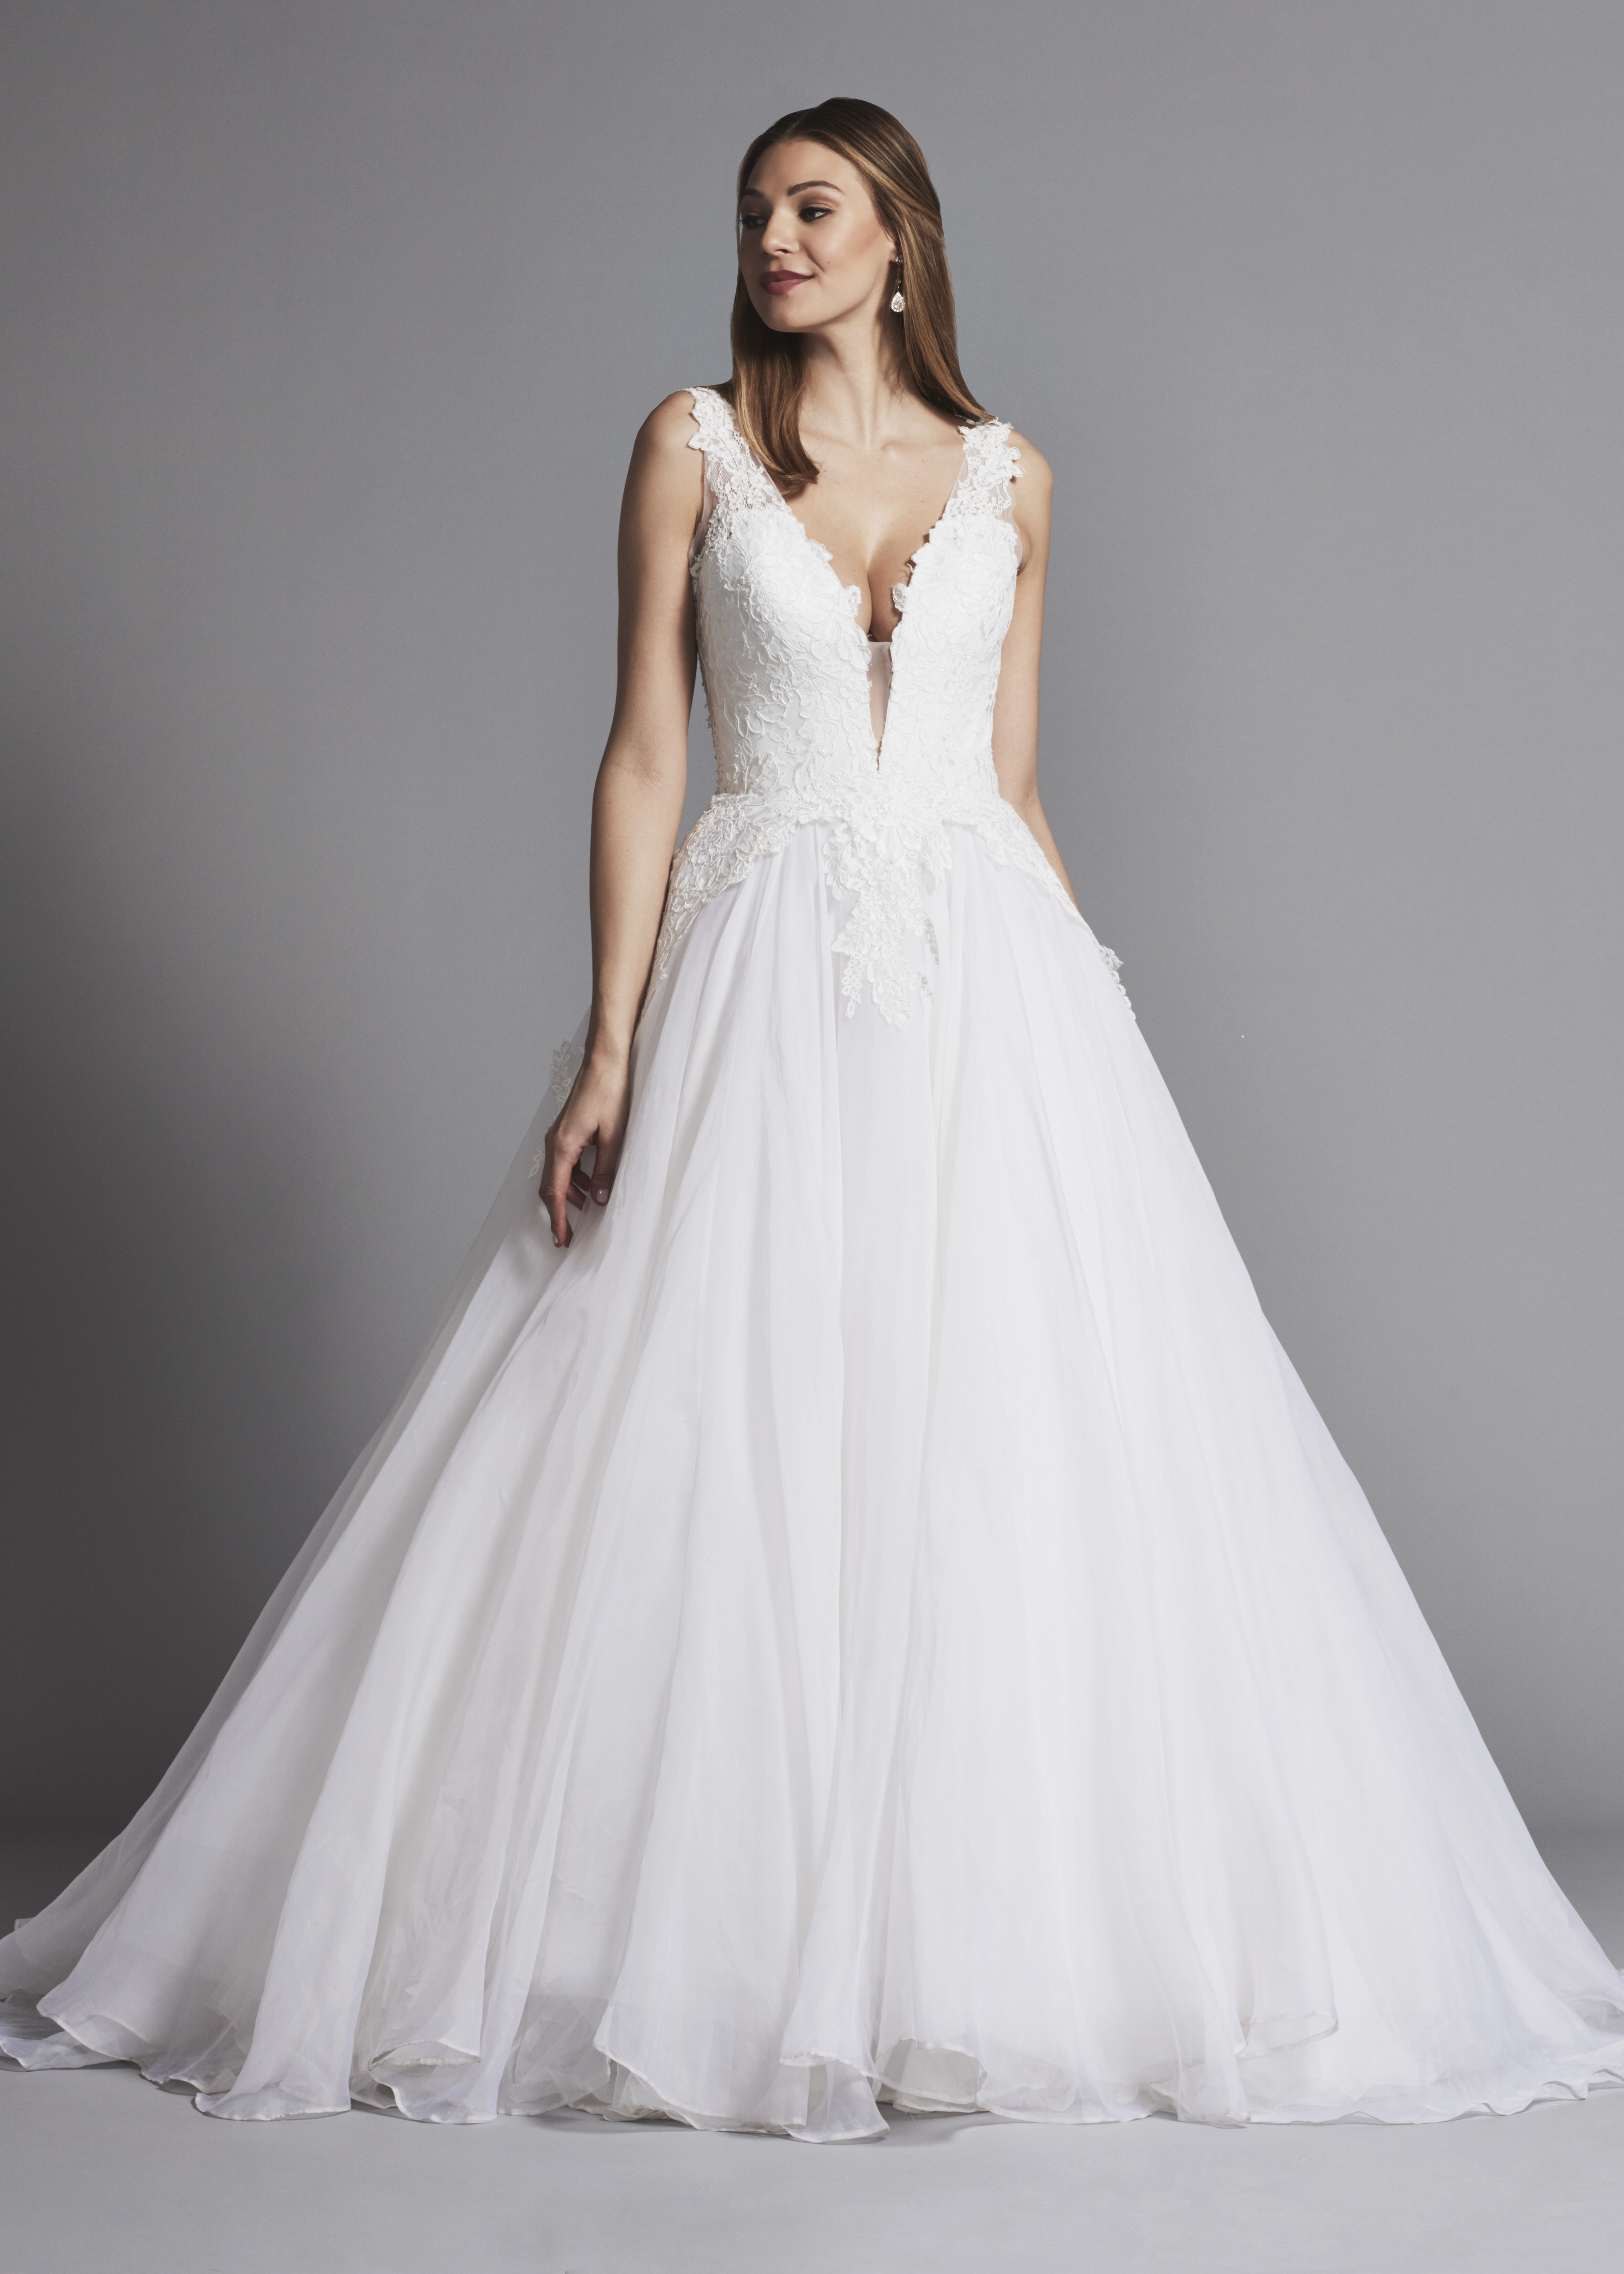 Classic And Romantic Lace And Organza Ball Gown Wedding Dress